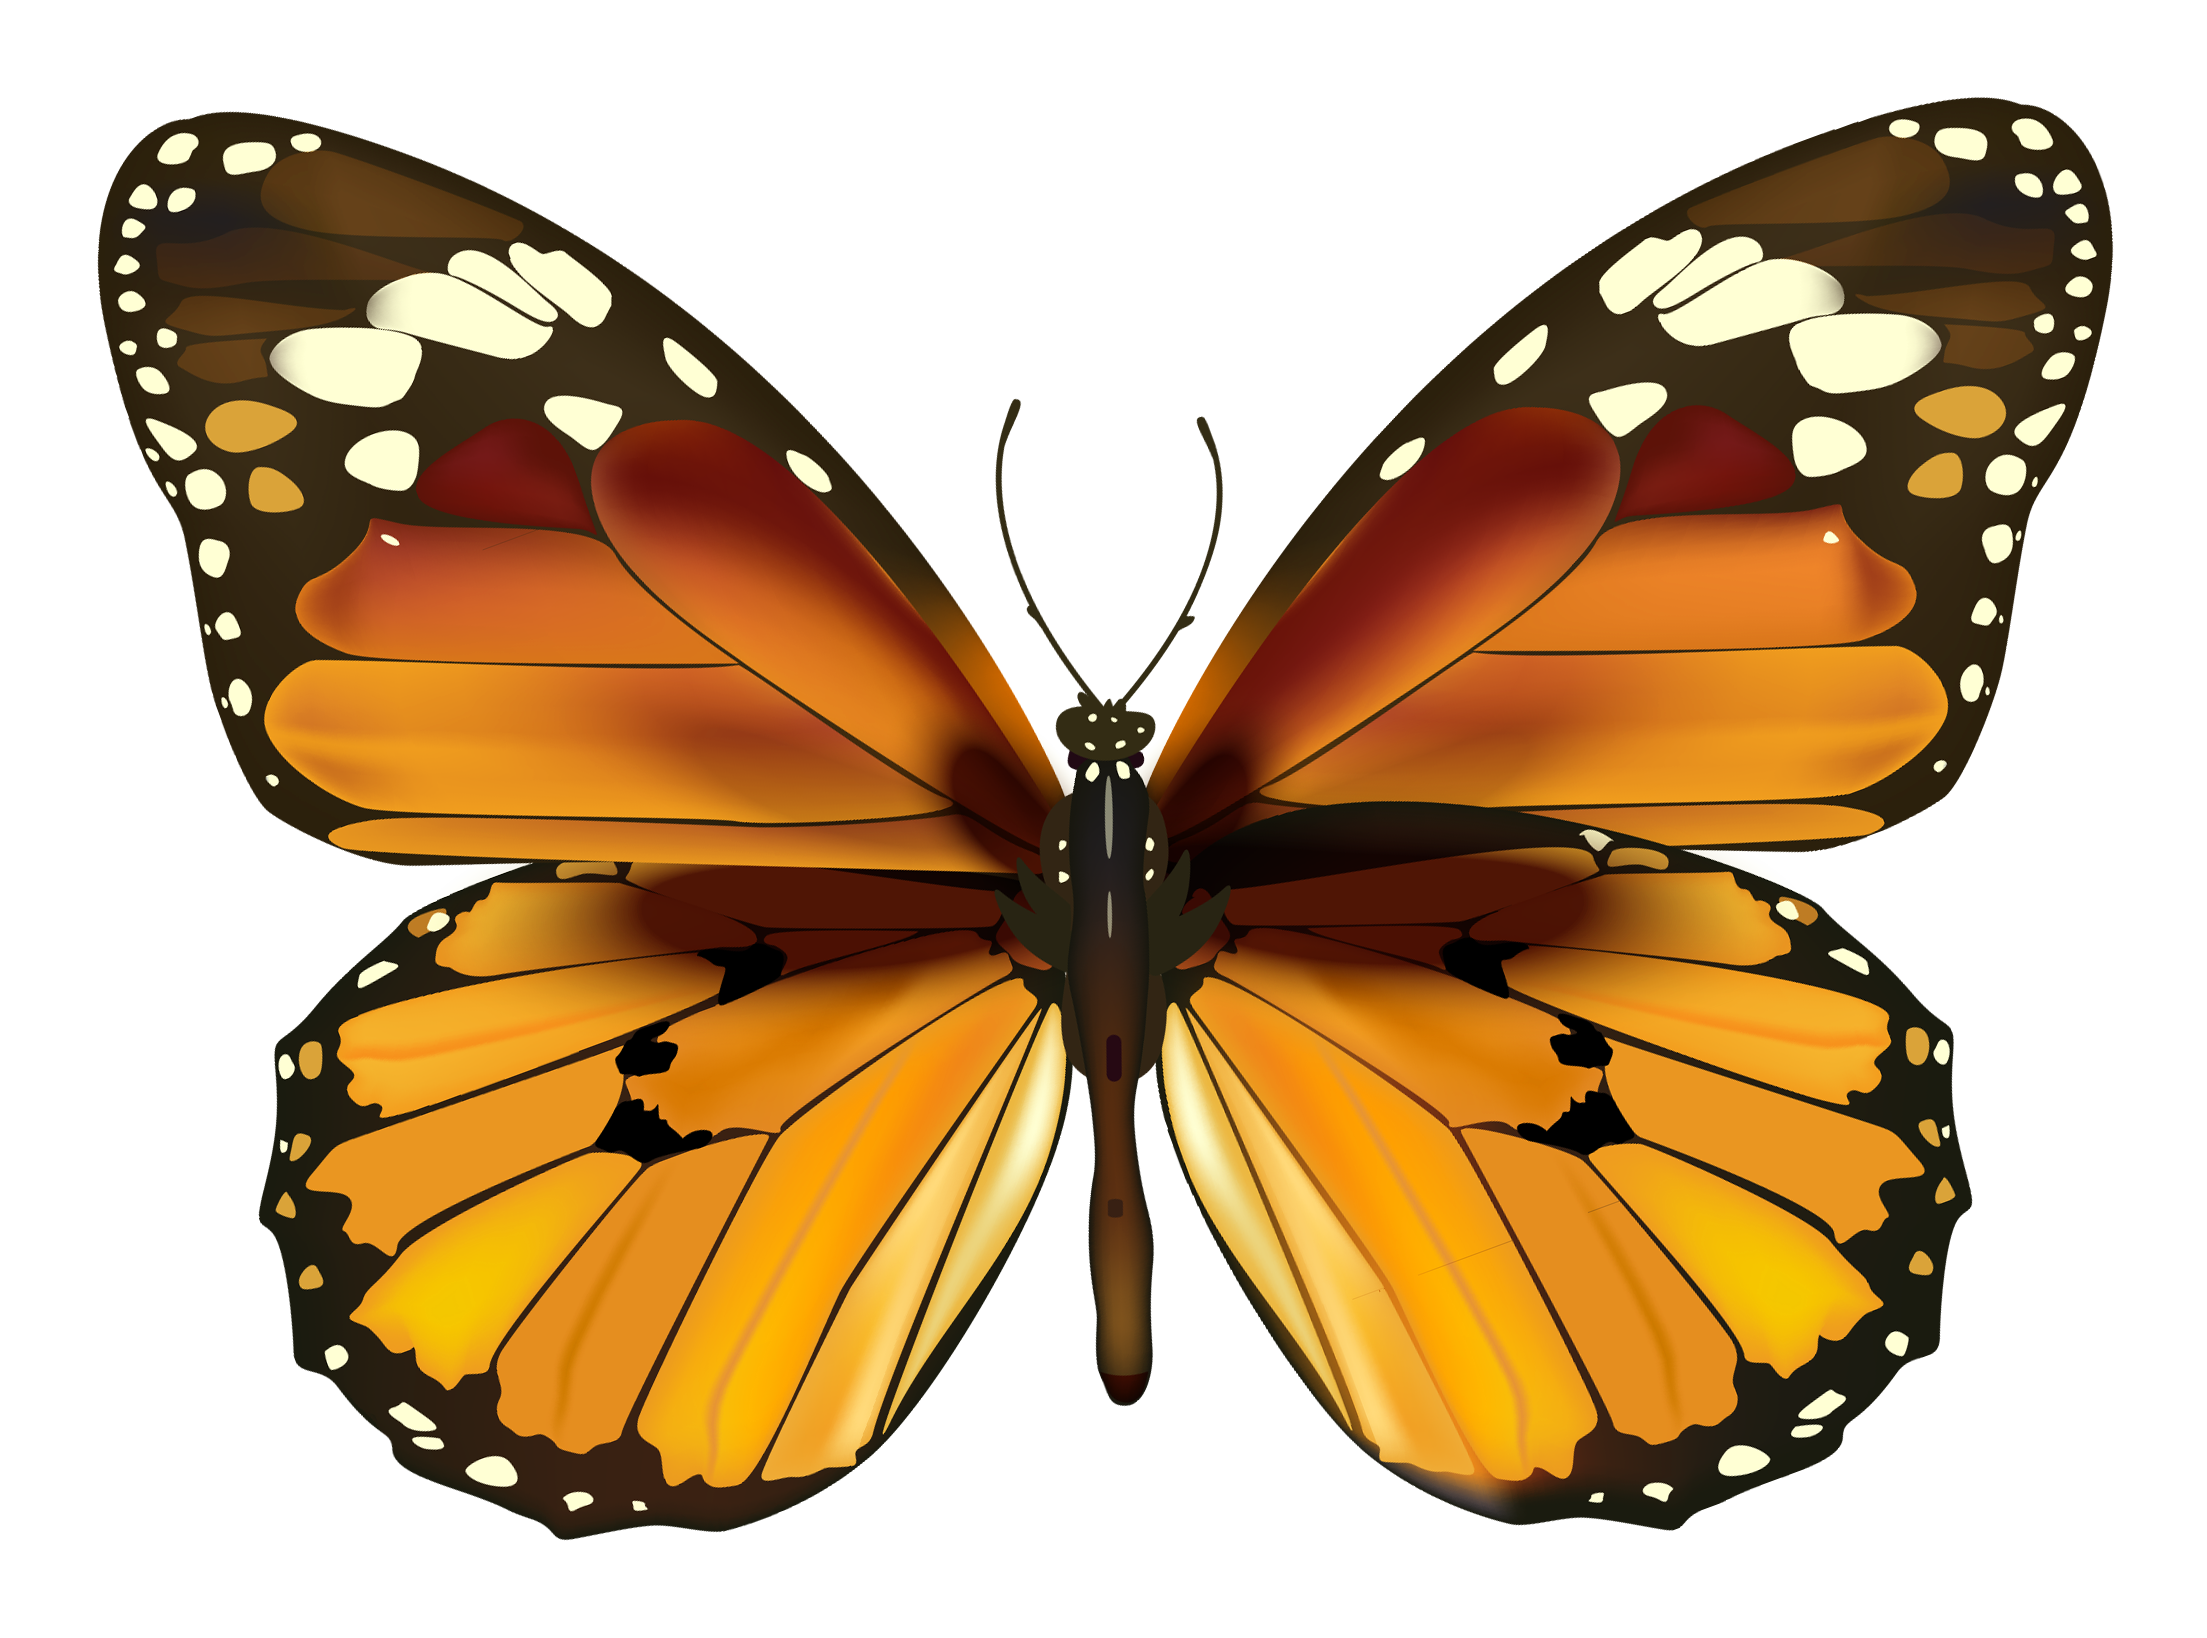 Drawn Butterfly Image 350.91 Kb